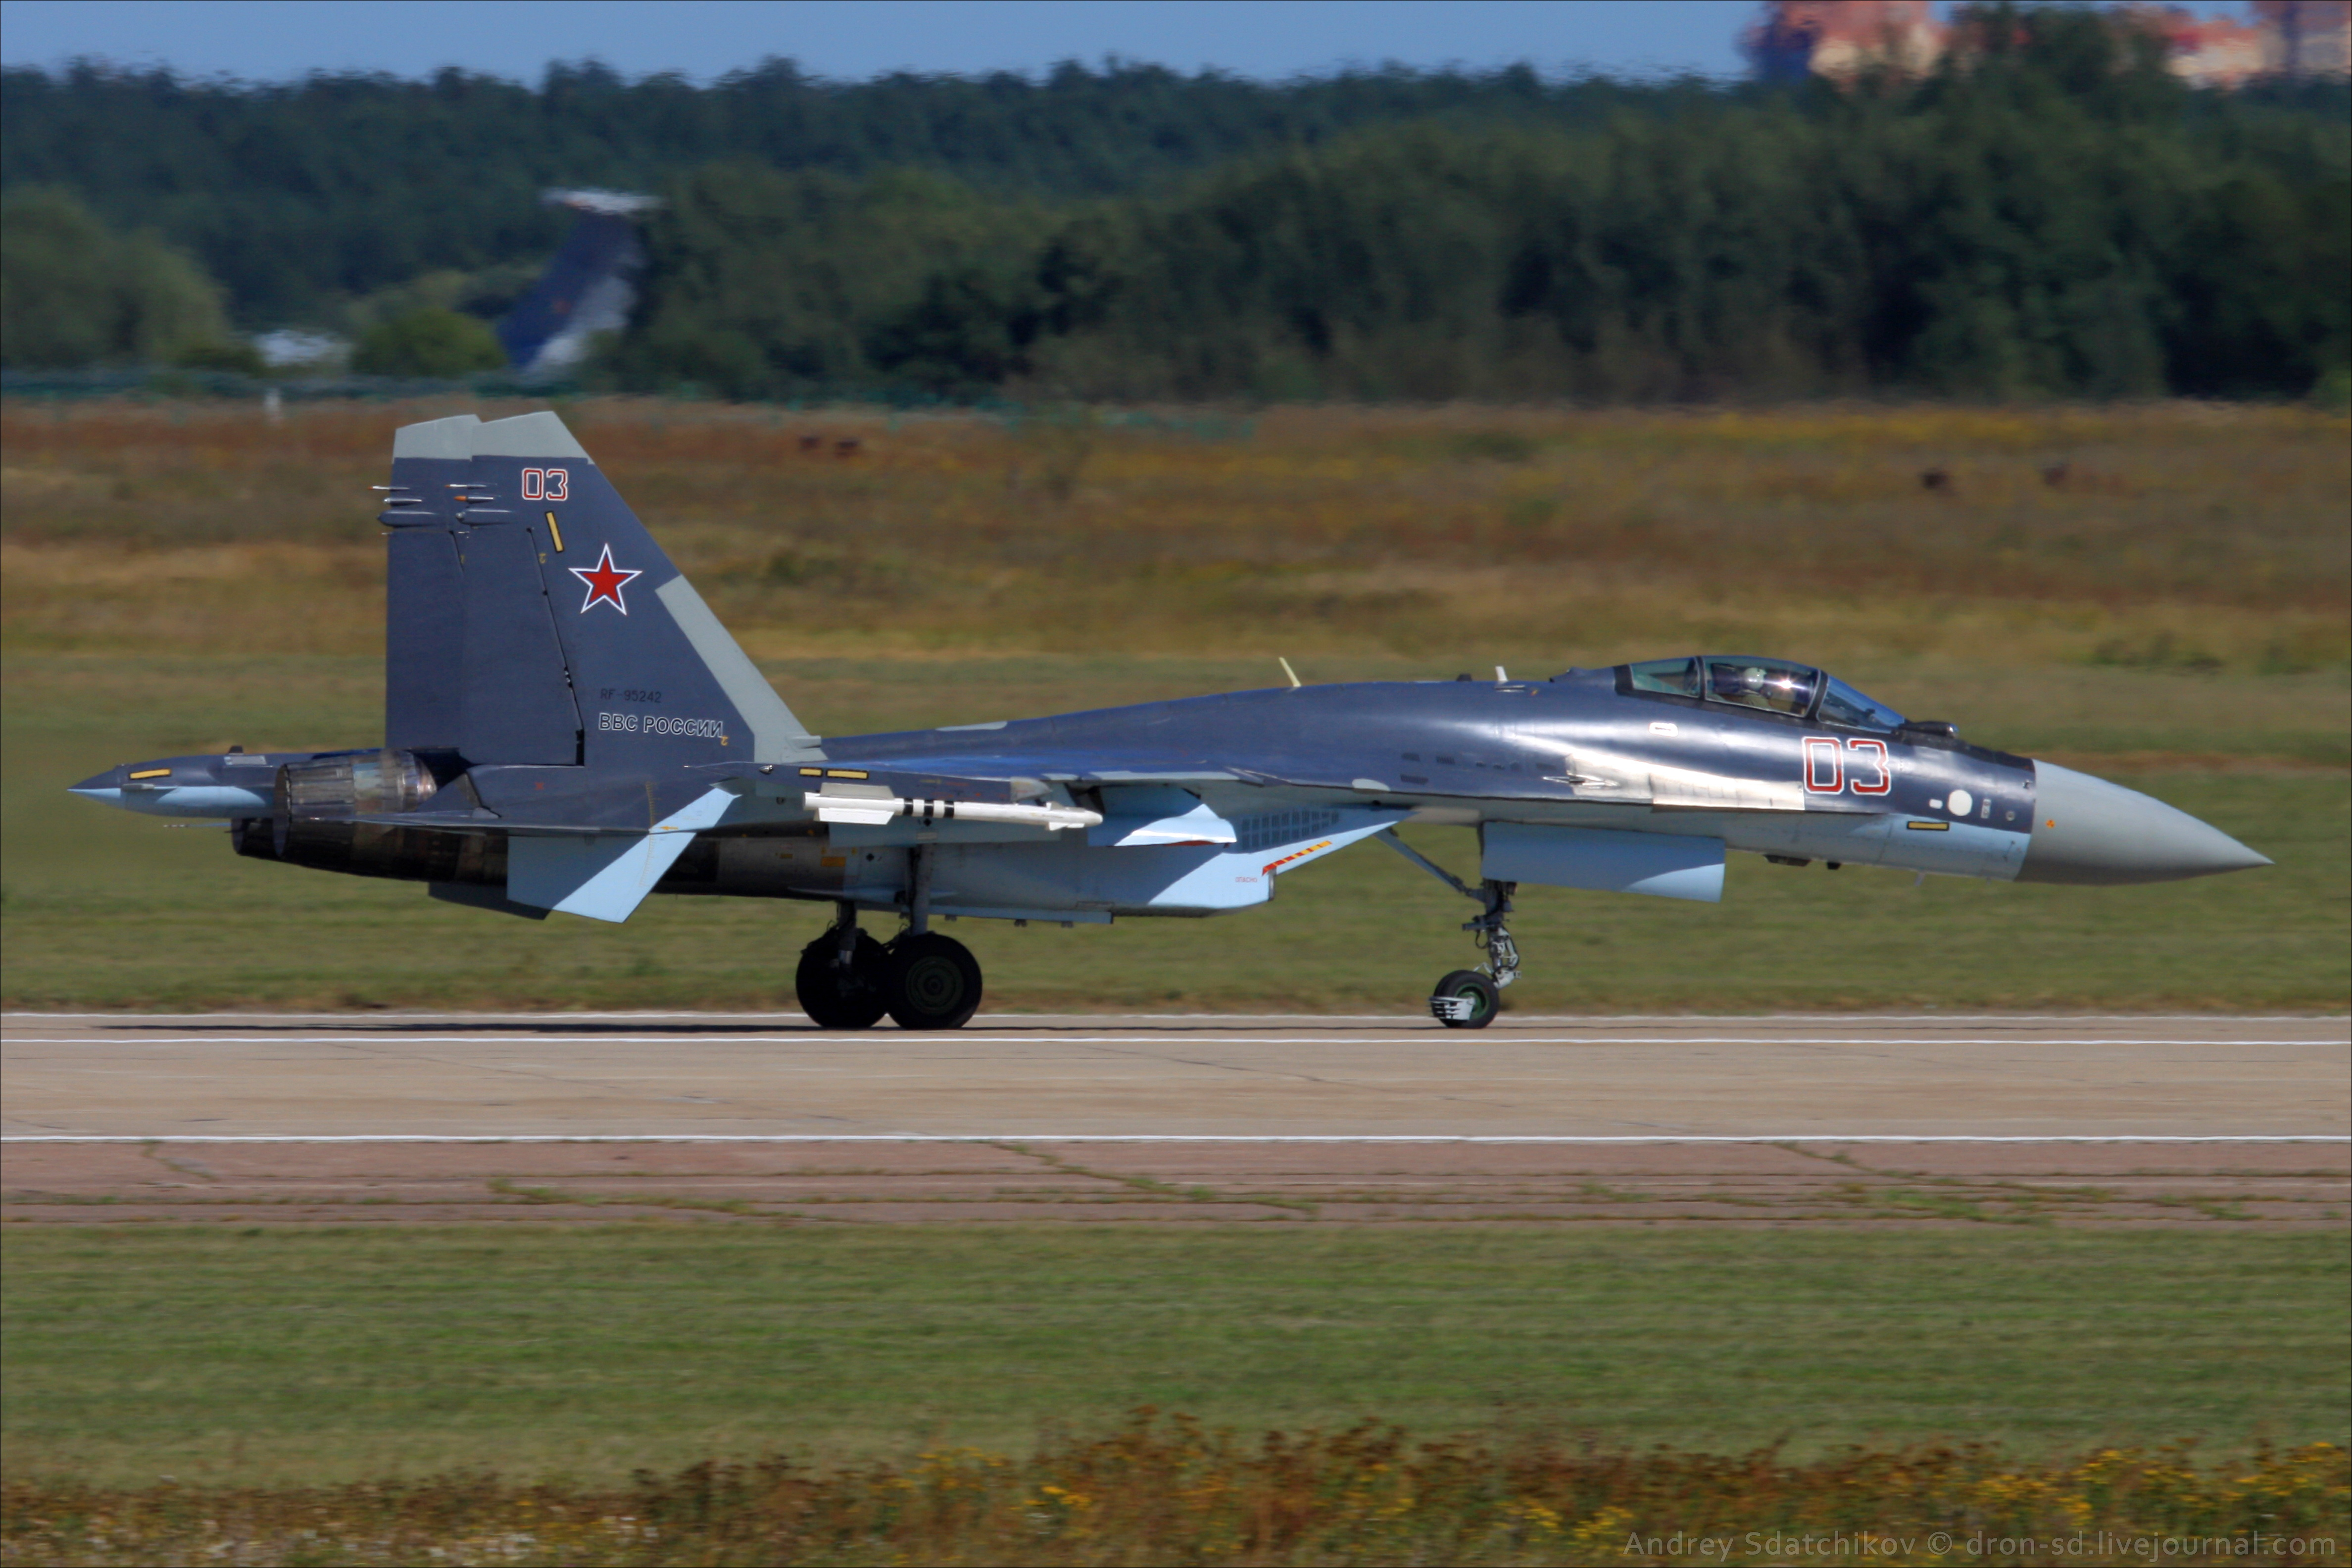 MAKS-2015 Air Show: Photos and Discussion - Page 3 0_122673_54867cfa_orig